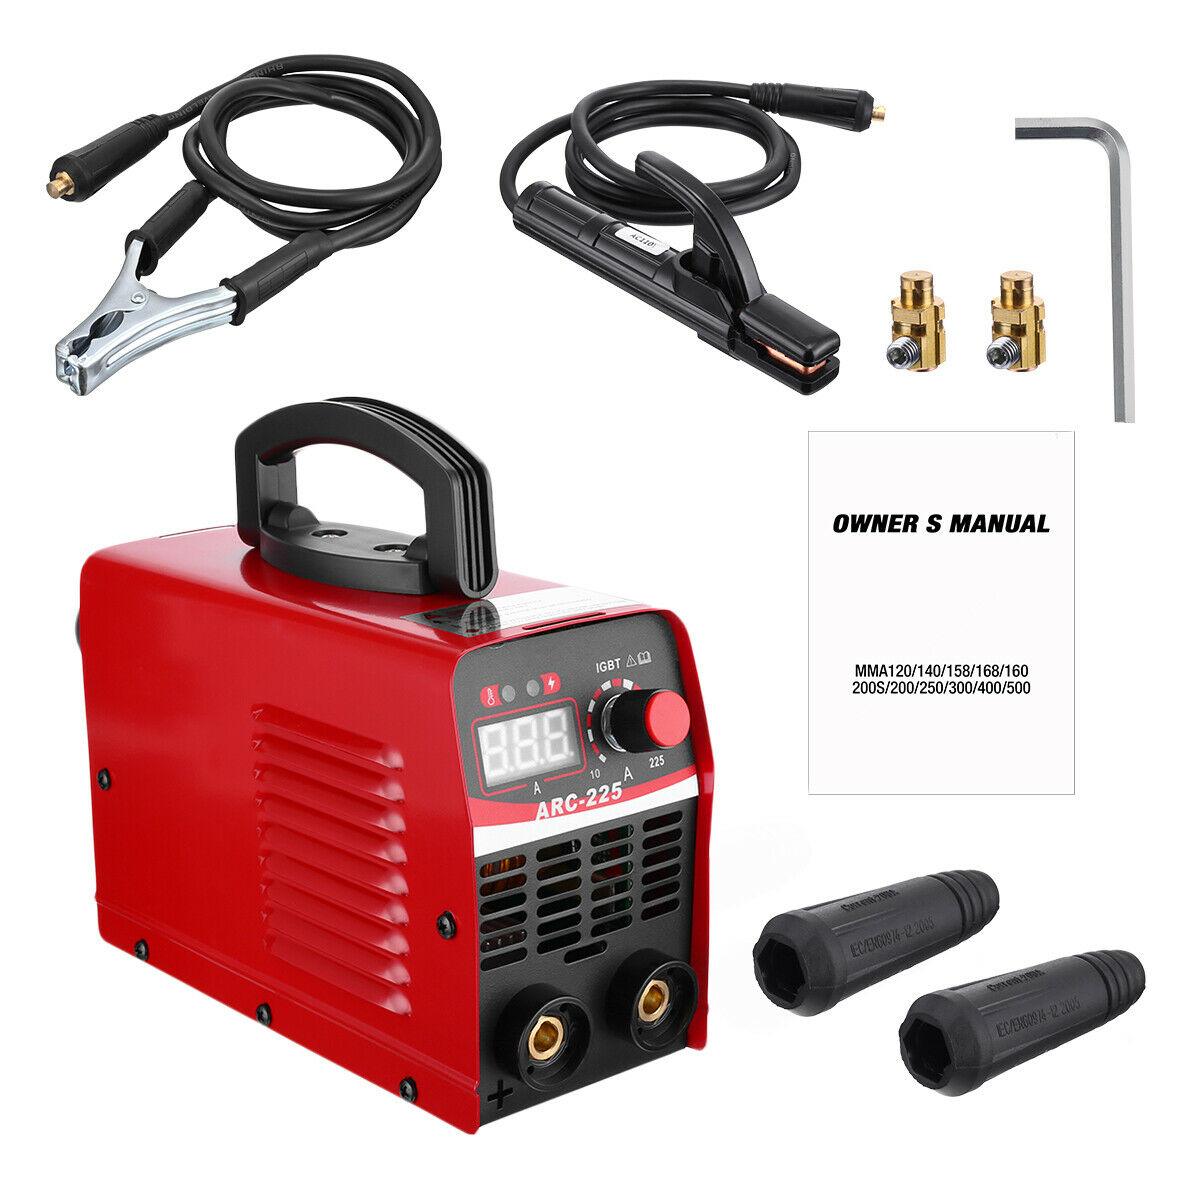 110/220V Mini ARC Electric Welding Machine DC Inverter ARC MMA Stick Welder IGBT. Available Now for 78.99